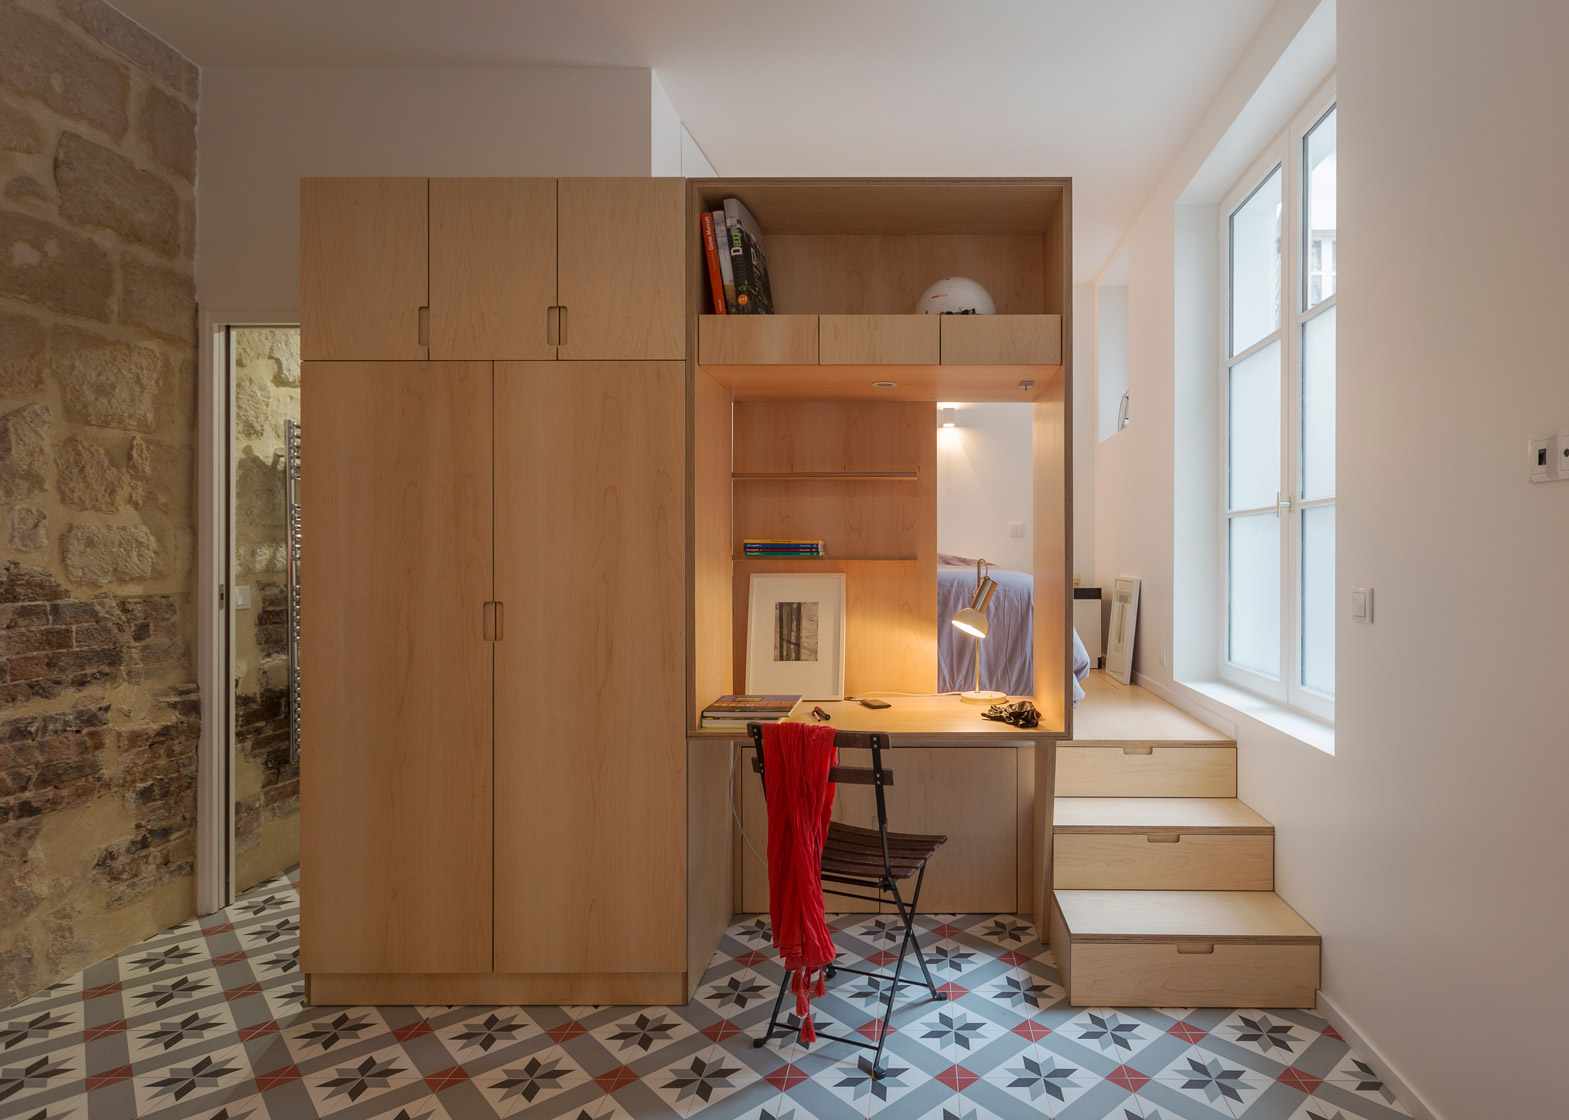 One Room Flat In Paris By Anne Rolland Architecte